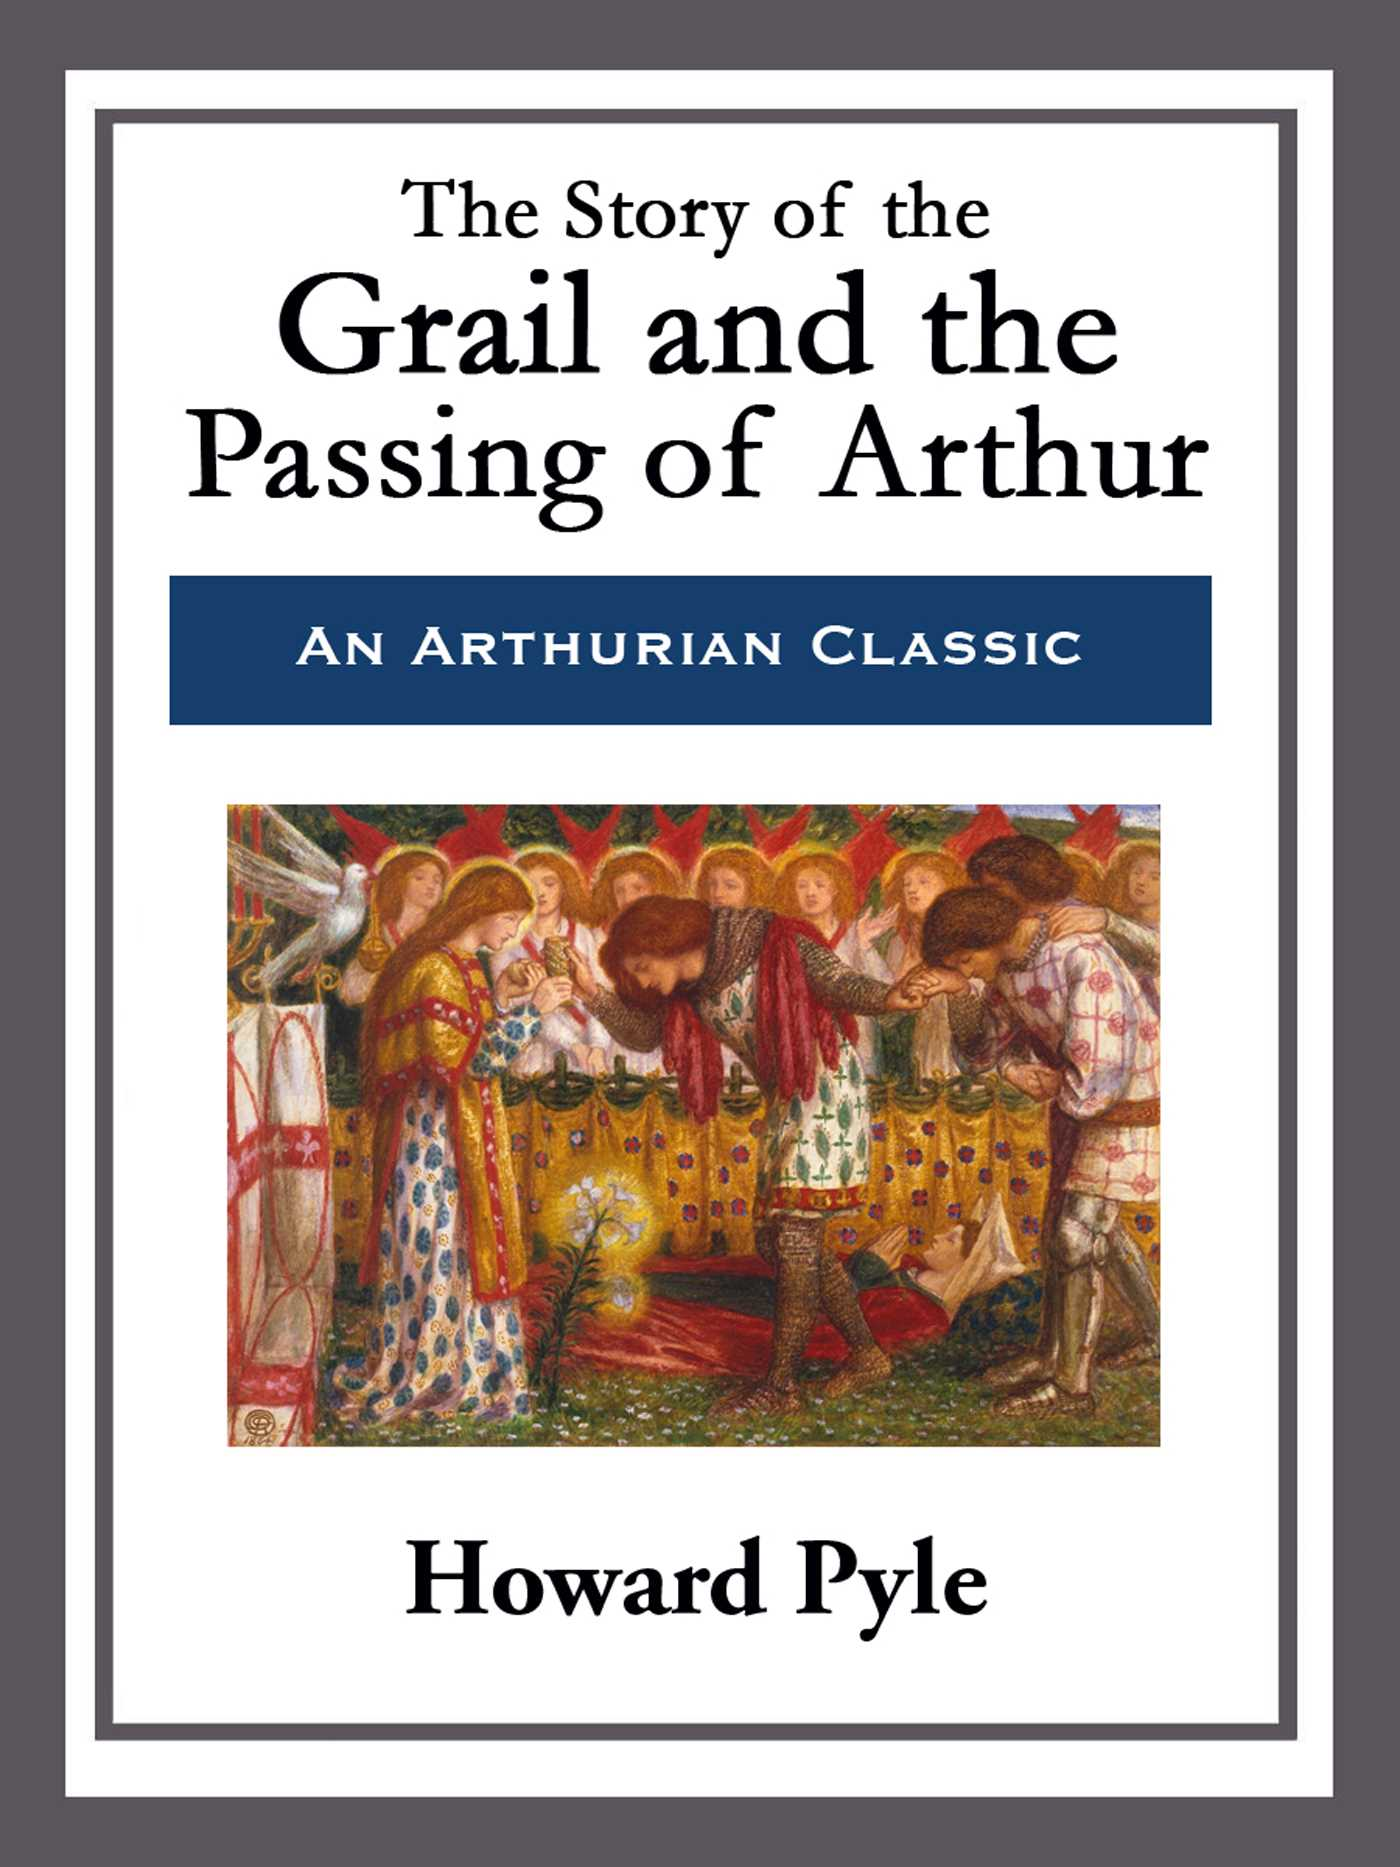 The story of the grail and the passing of arthur 9781682999608 hr